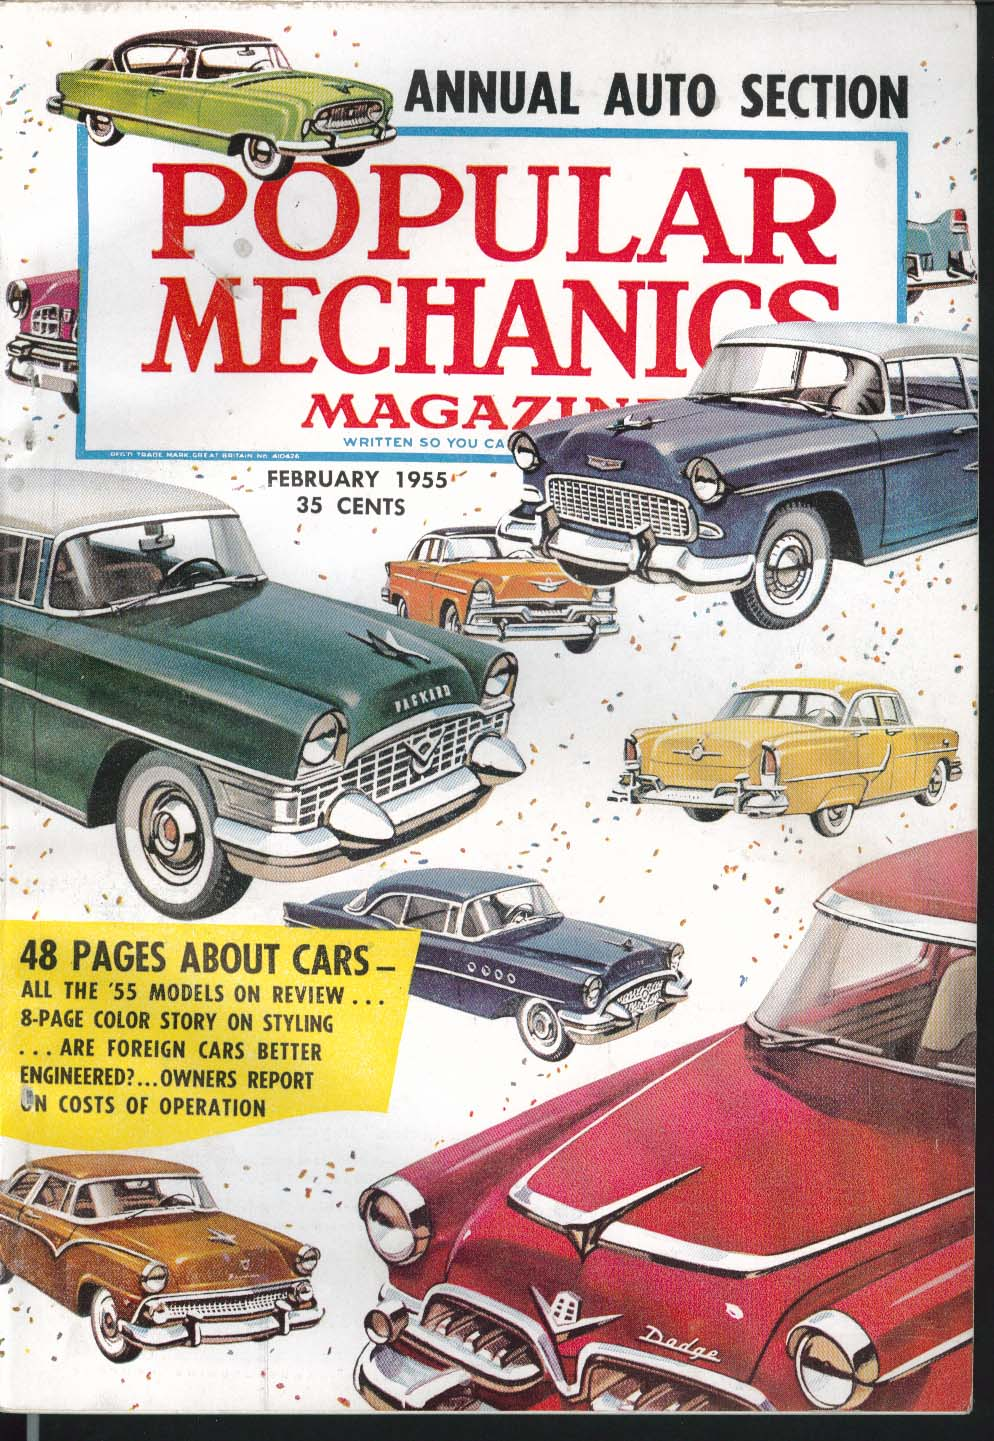 Image for POPULAR MECHANICS Home Movies New Cars Automatic Transmissions ++ 2 1955